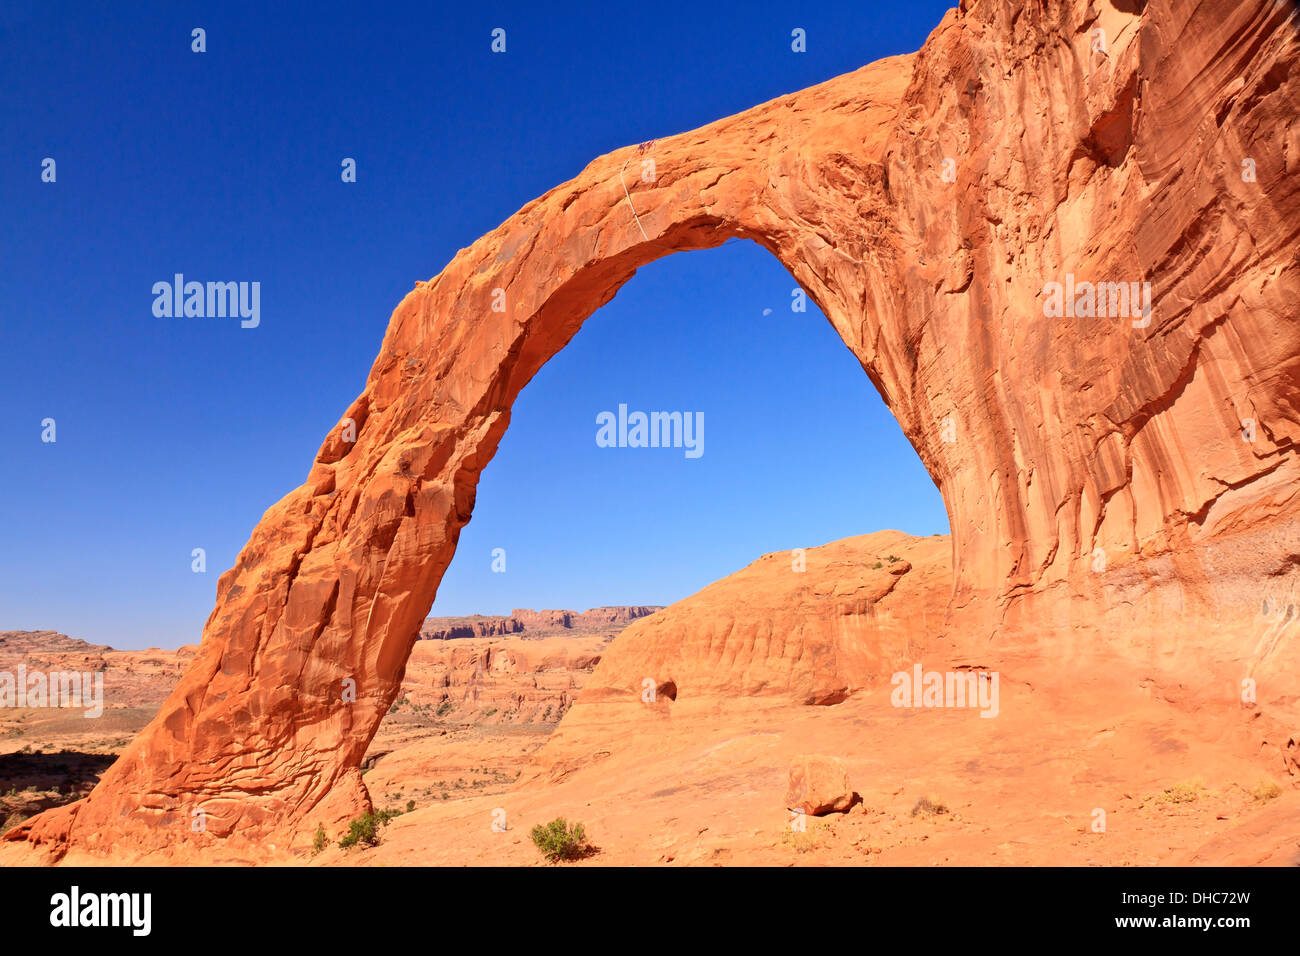 Corona Arch and the moon in a clear blue sky near Moab, Utah - Stock Image